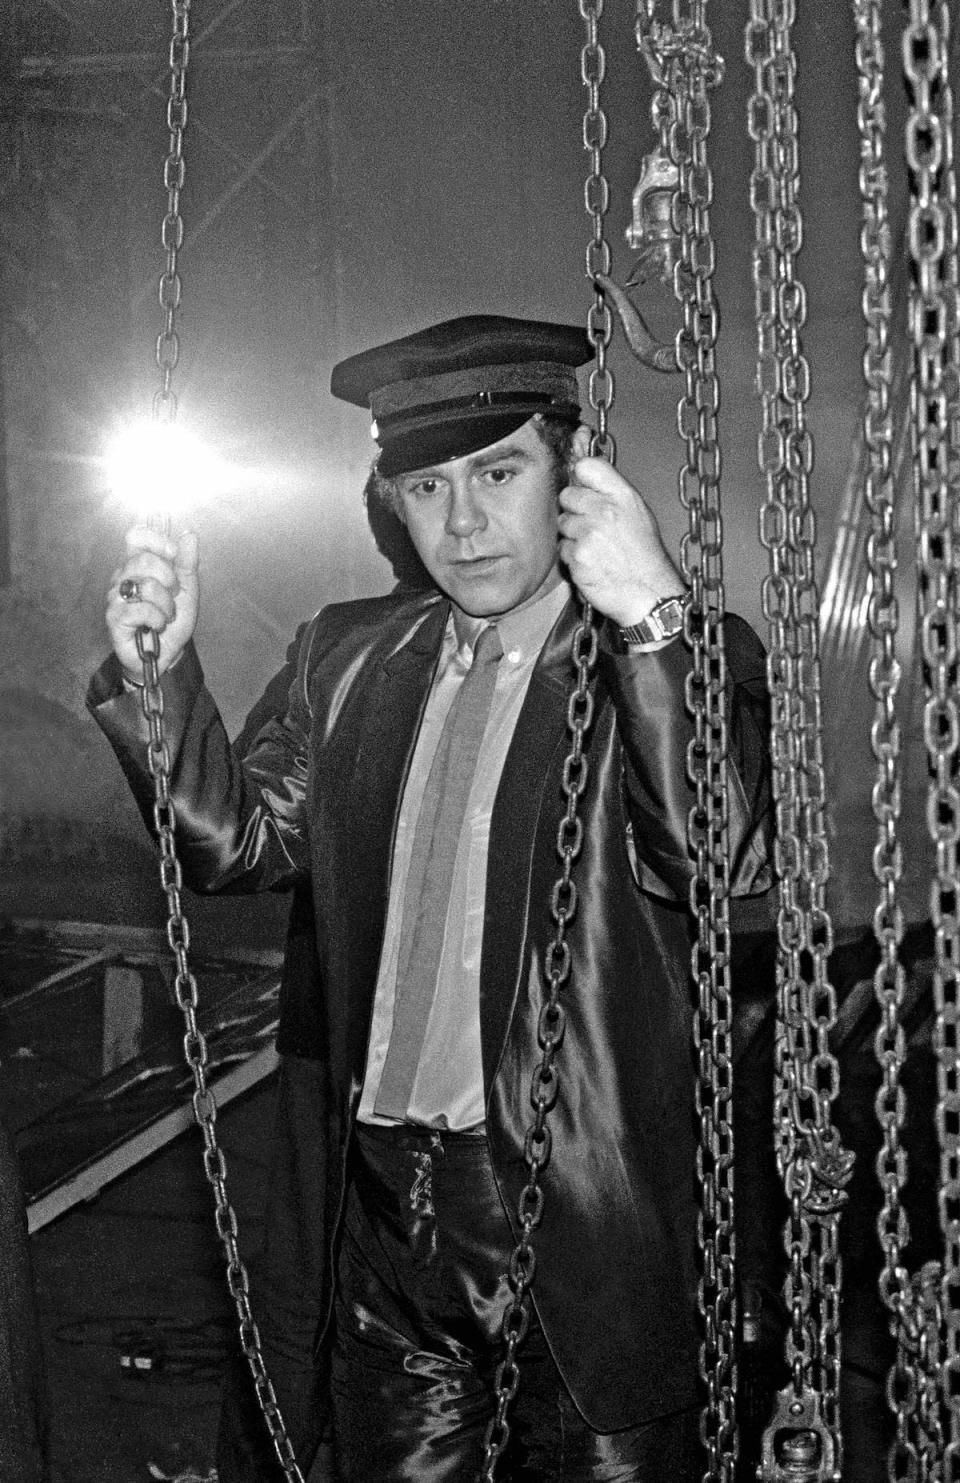 <p>Elton John in an all-leather look at Shepperton Studios near London in 1981, during the filming for a videogram for his album <em>The Fox</em>. (Photo: Getty Images) </p>